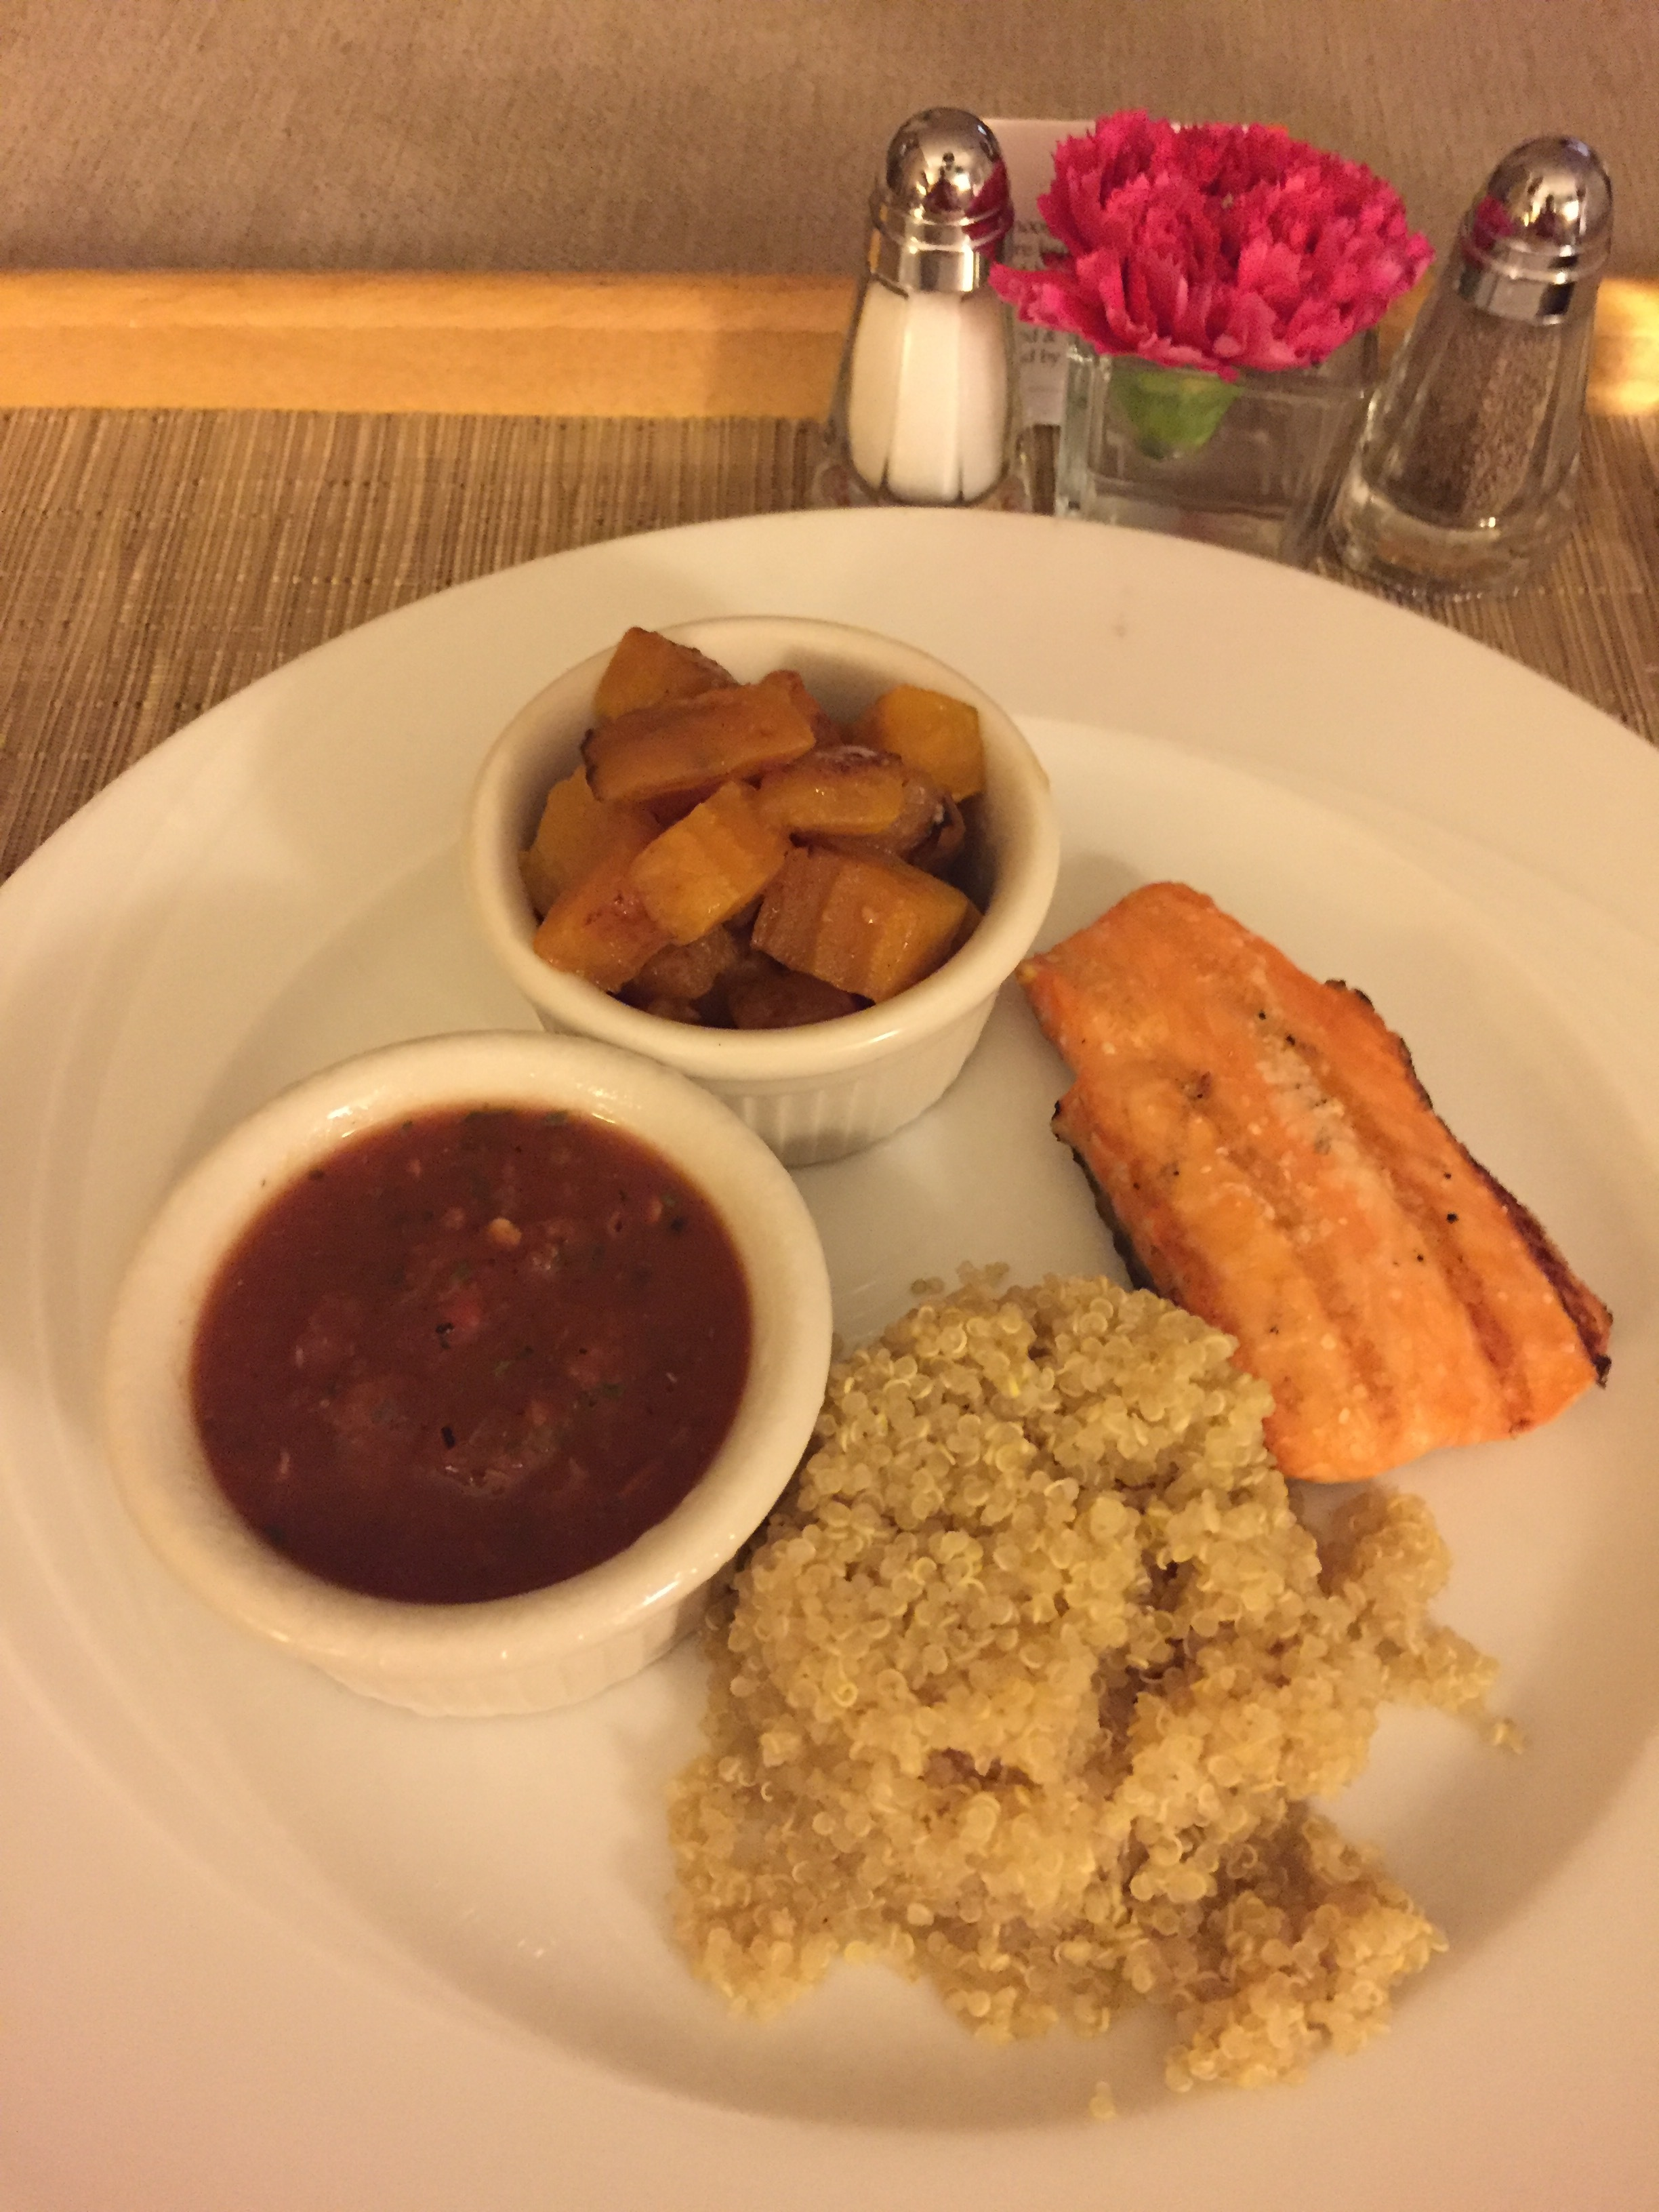 Room service- 4oz salmon with quinoa and golden beets